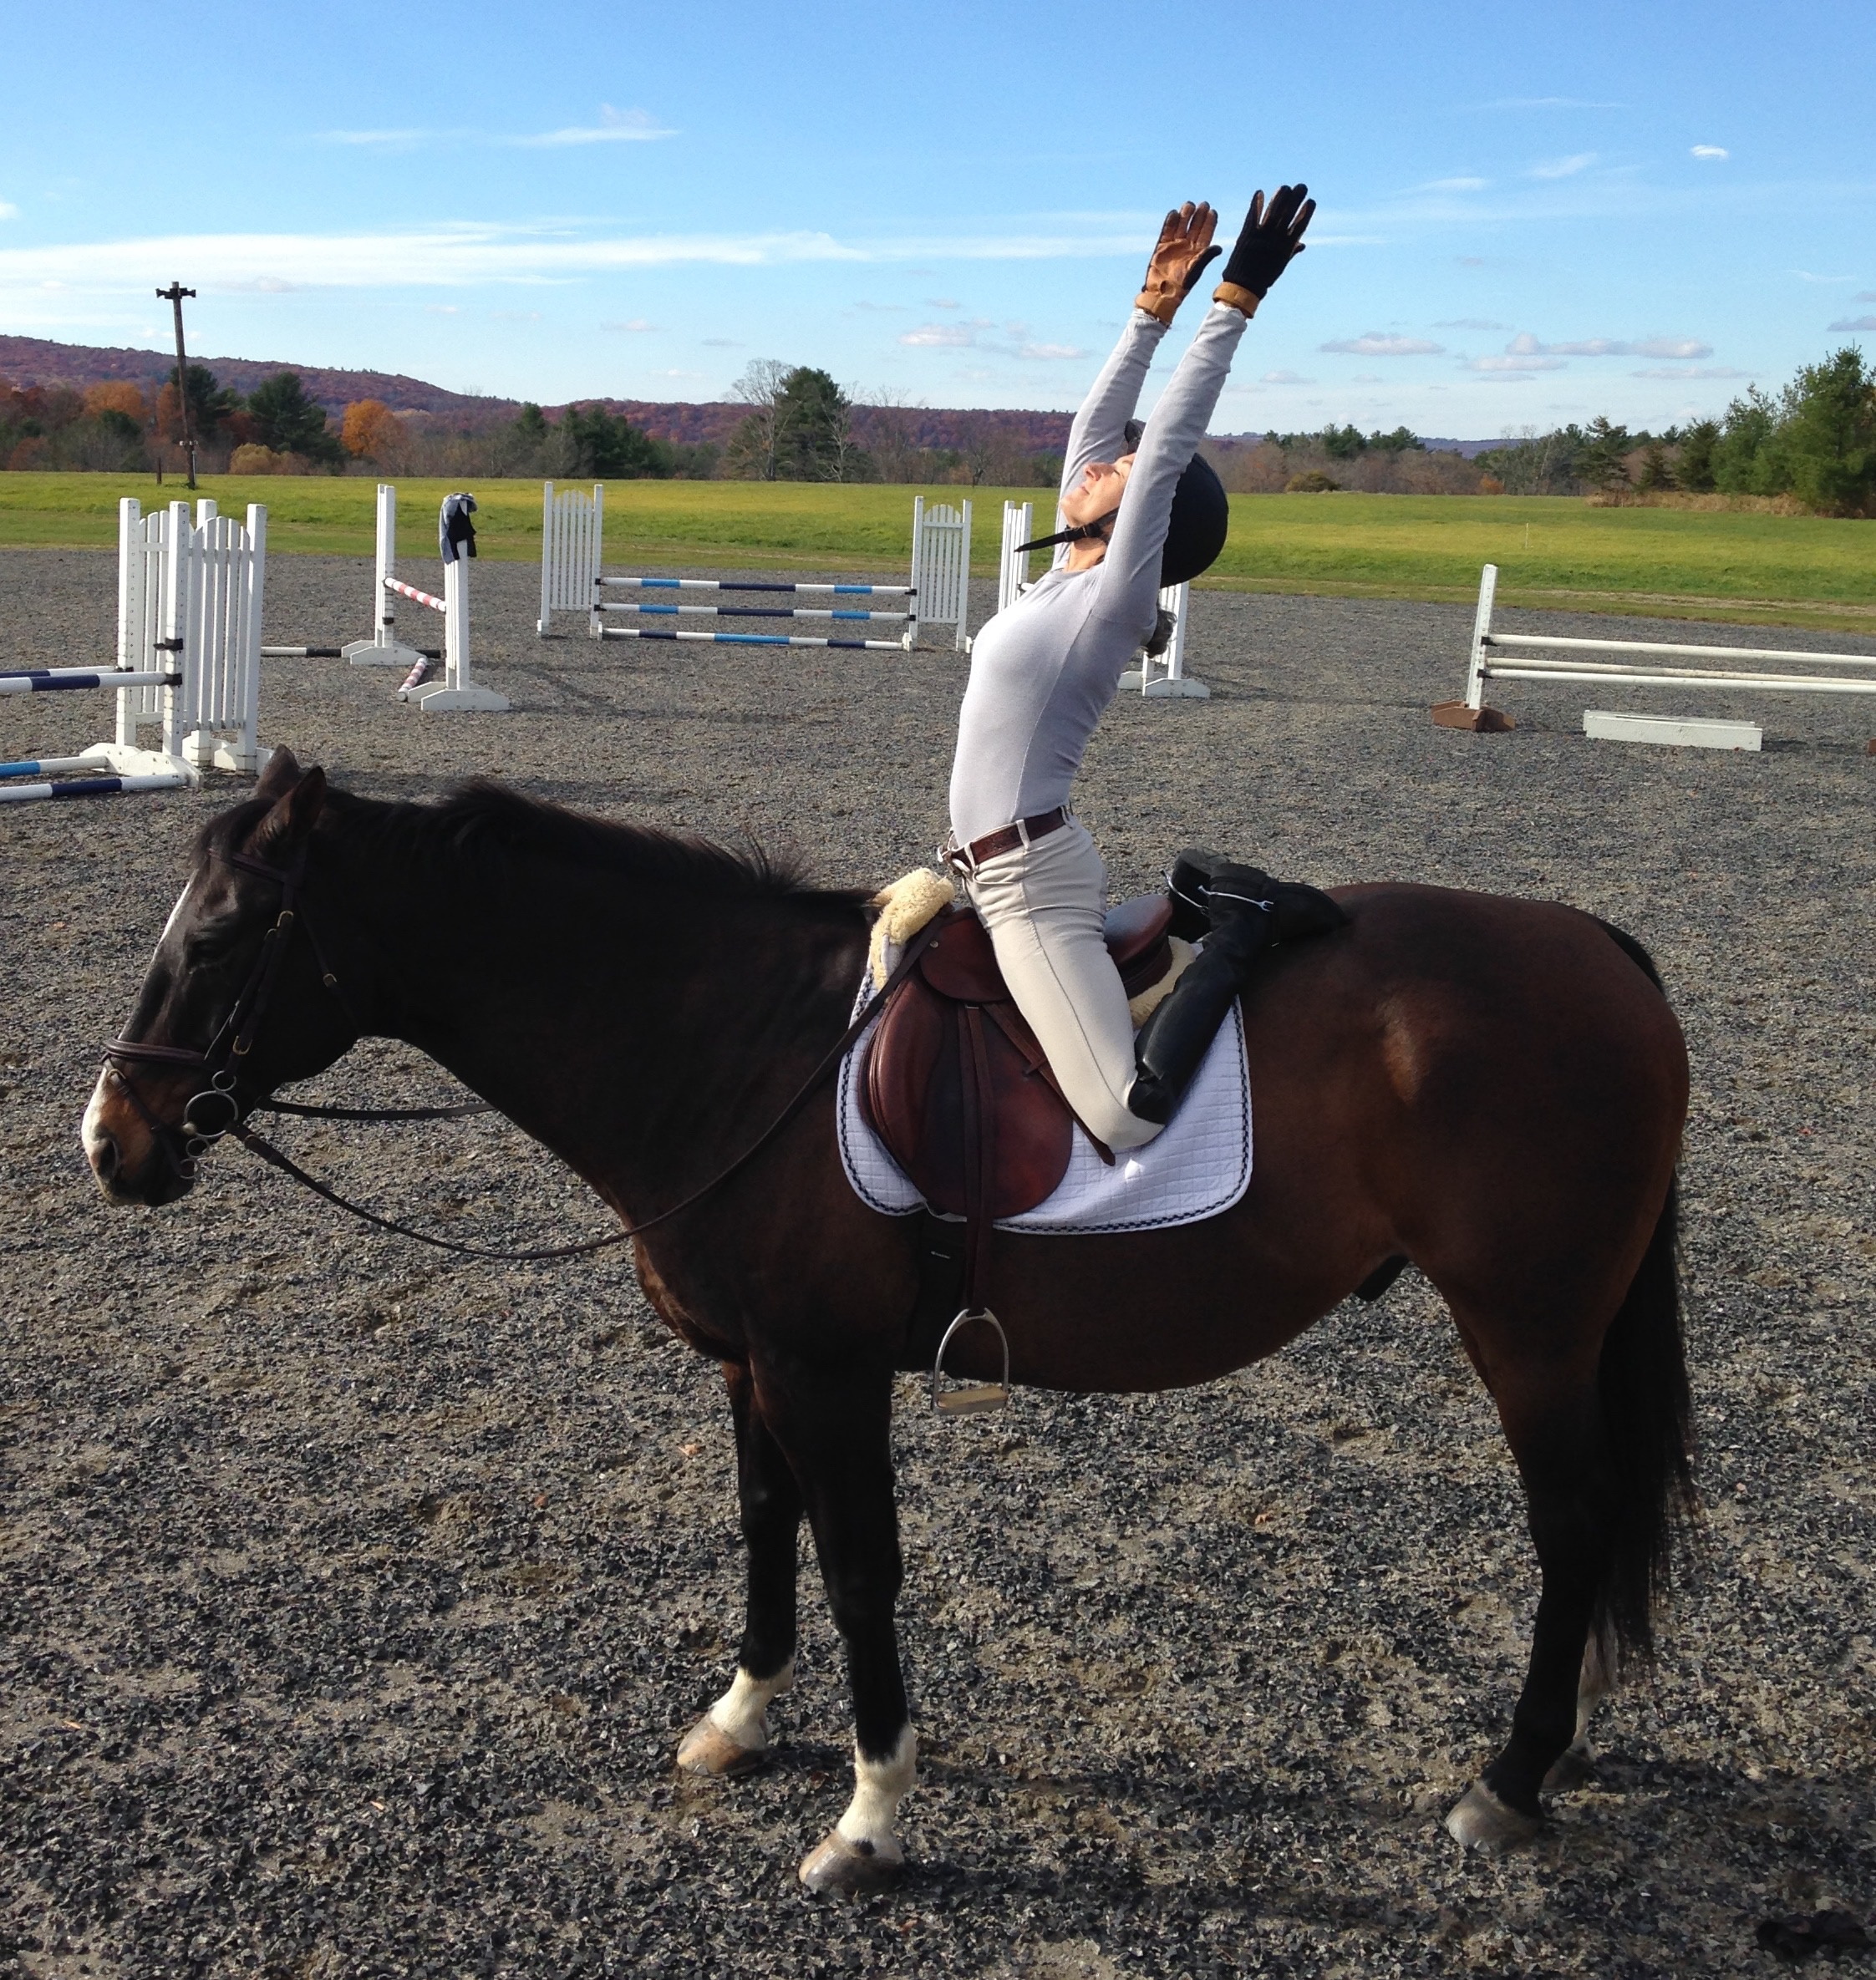 Flit owned by SUsie Pellitier - Flit being a gentleman, letting me practice some new postures